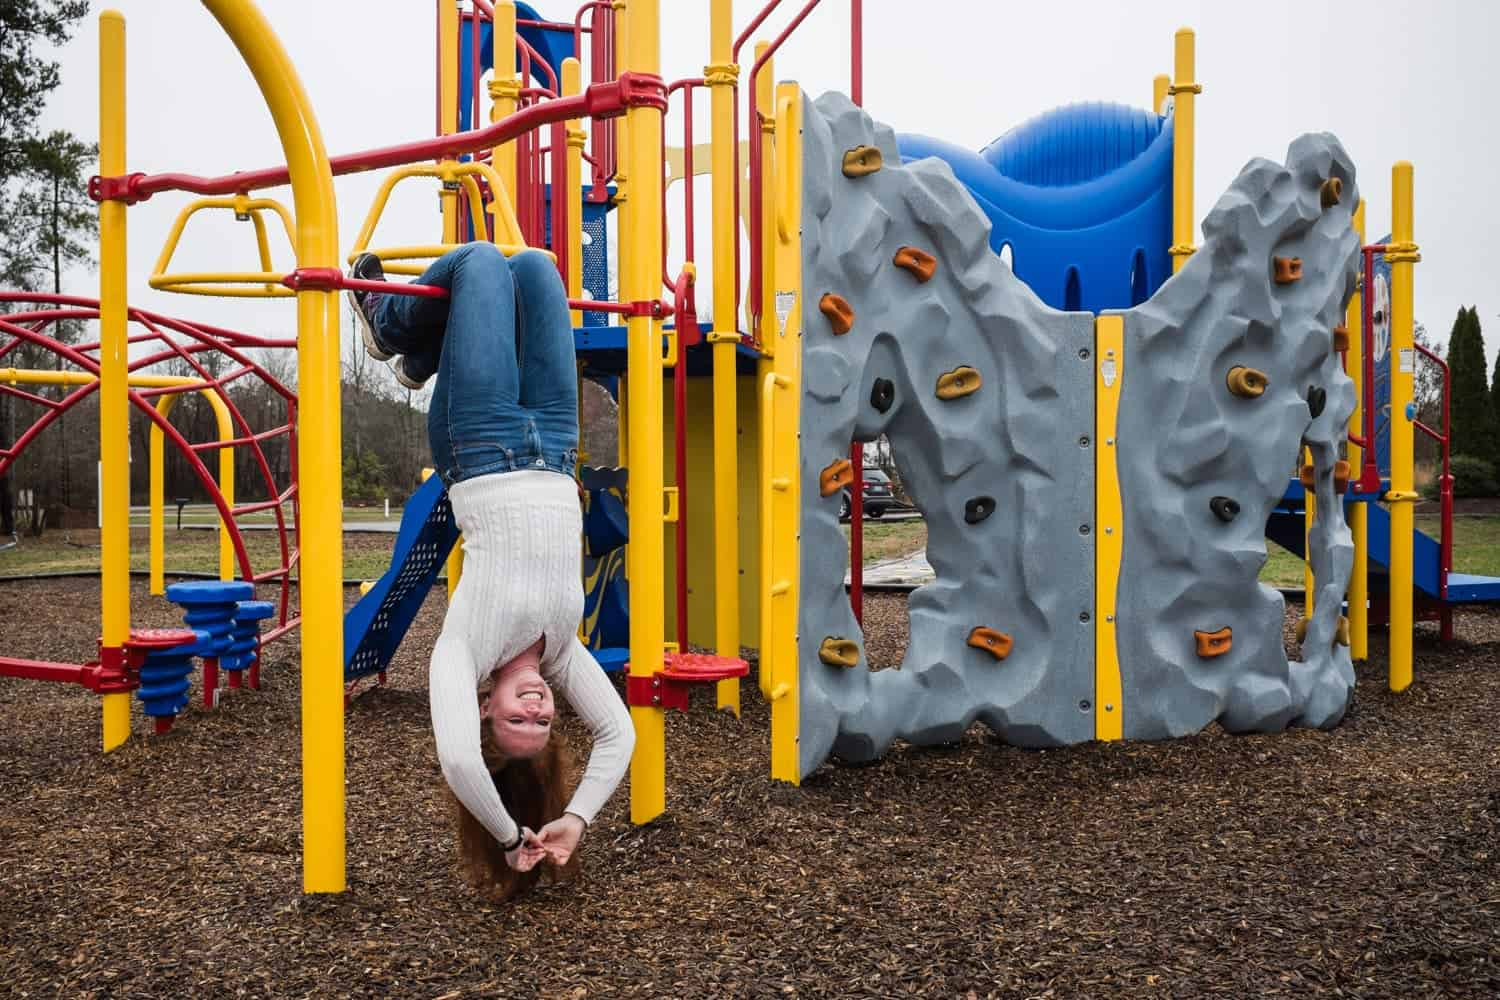 Shannon McAlister, director of the John 3:16 center in Littleton, North Carolina, hangs off the monkey bars on the facility's playground. Photo by Shawn Poynter